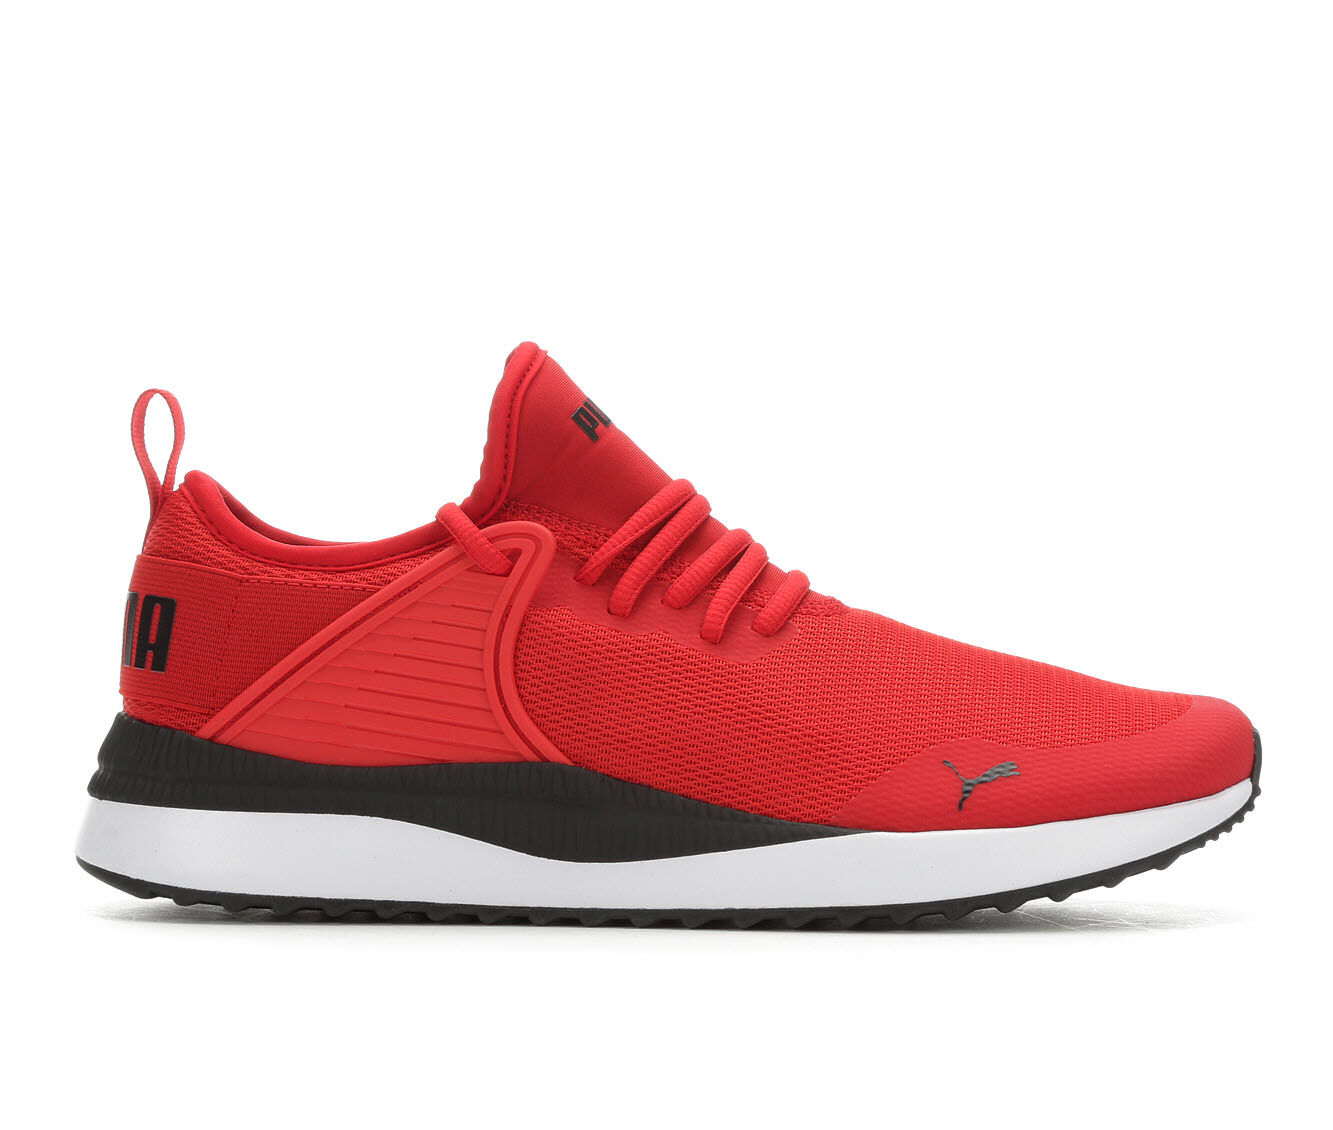 Men's Puma Pacer Next Cage Sneakers Red/Black/White